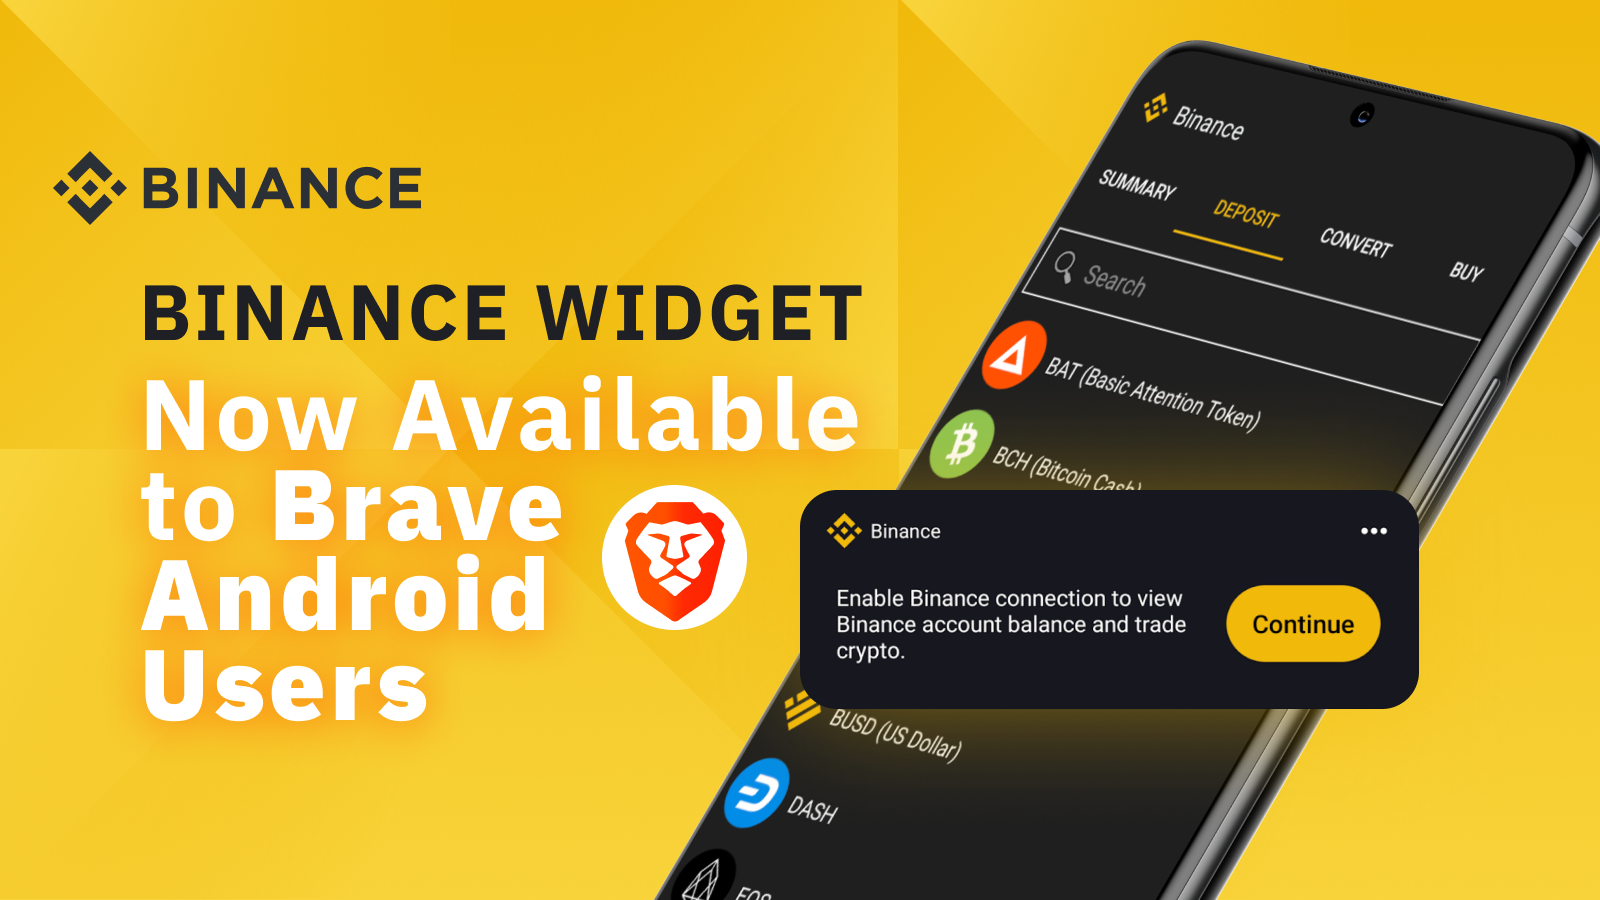 Binance Widget Now Available to Brave Android Users